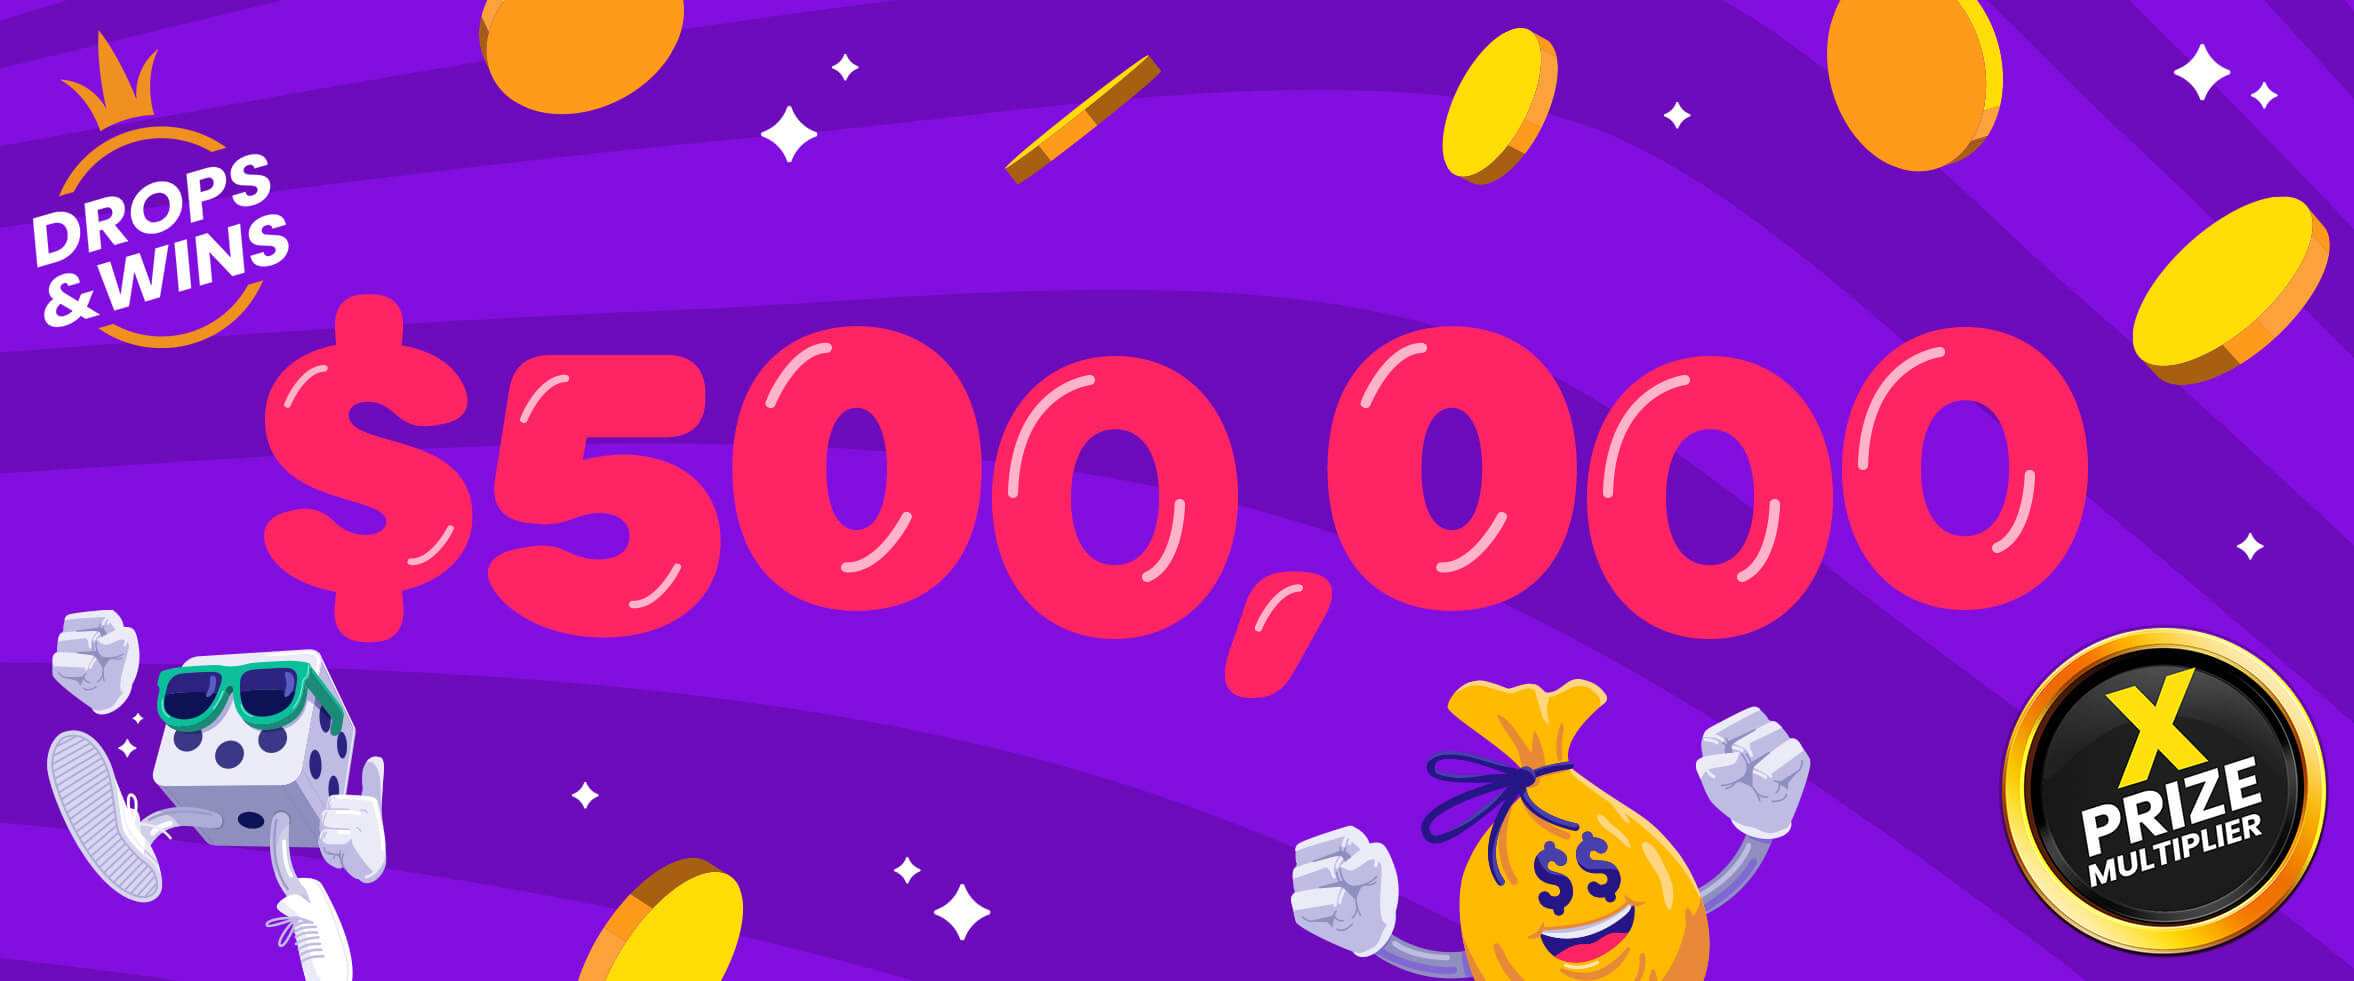 Pragmatic Play Doubles Drops & Win Monthly Prizes to ₹50,000,000